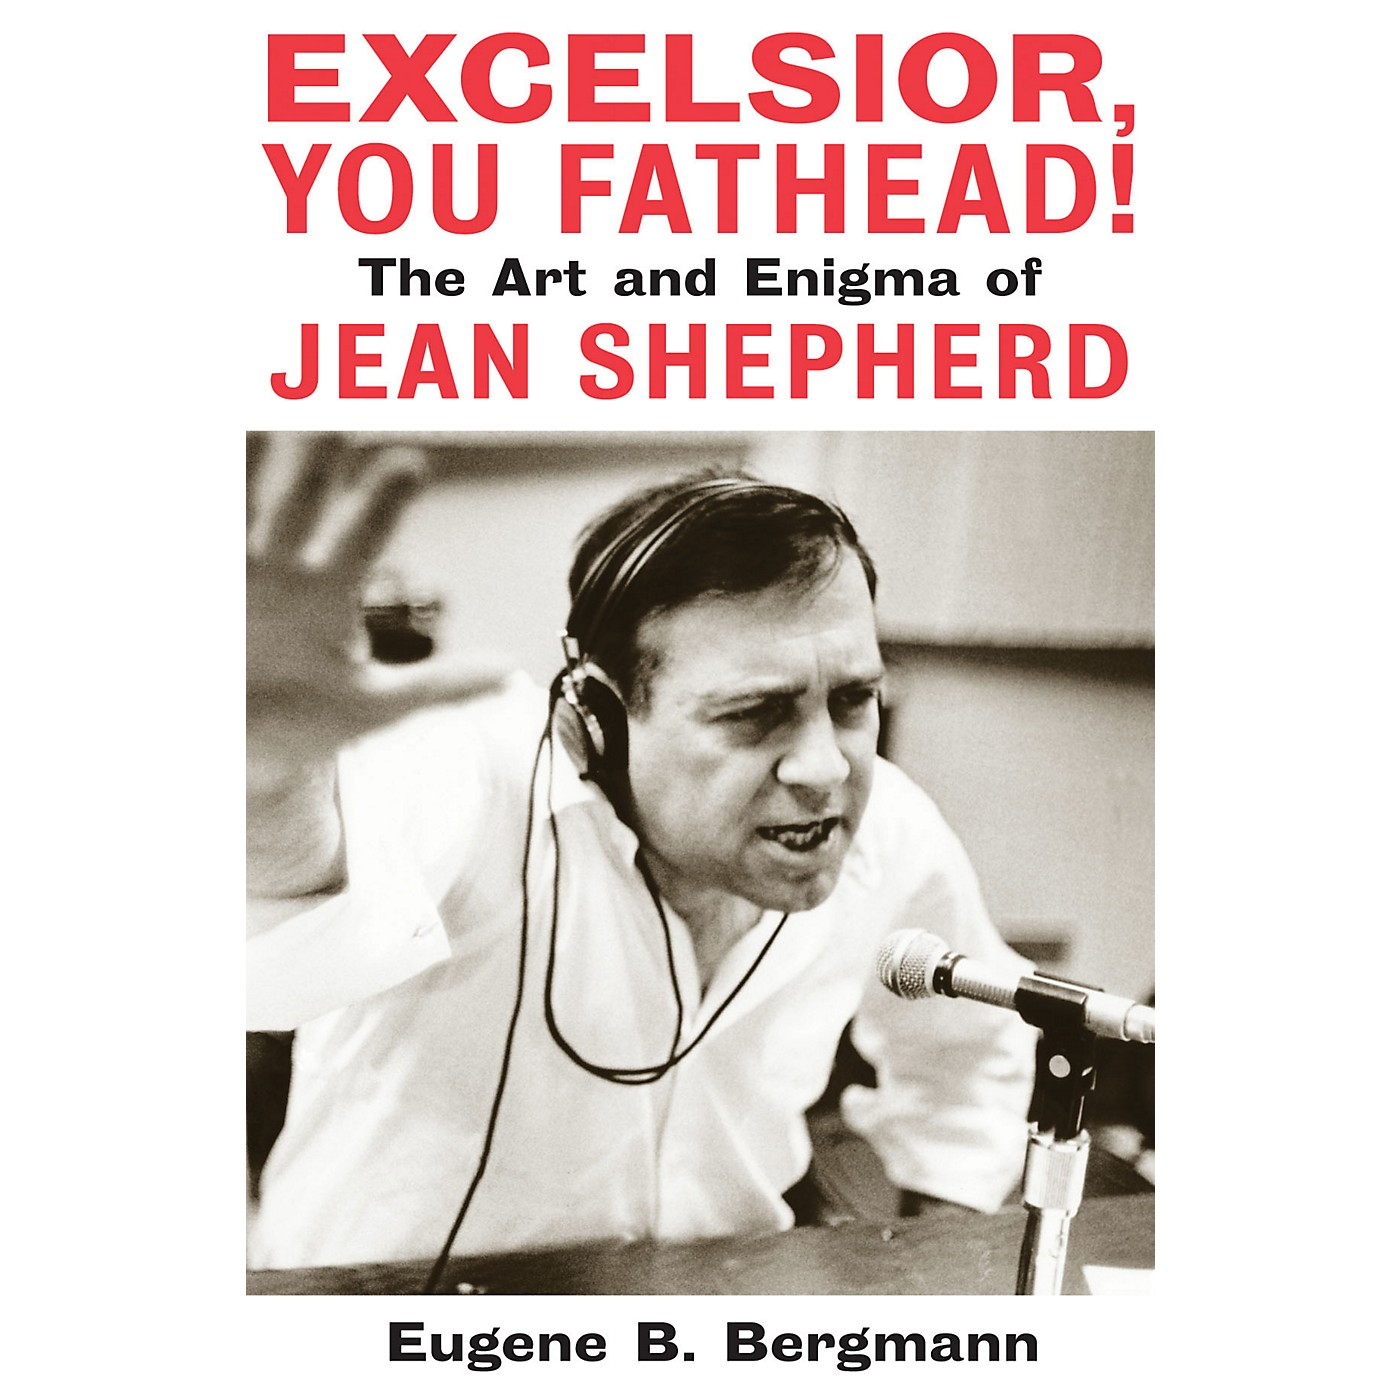 Applause Books Excelsior, You Fathead! Applause Books Series Hardcover Written by Eugene B. Bergmann thumbnail